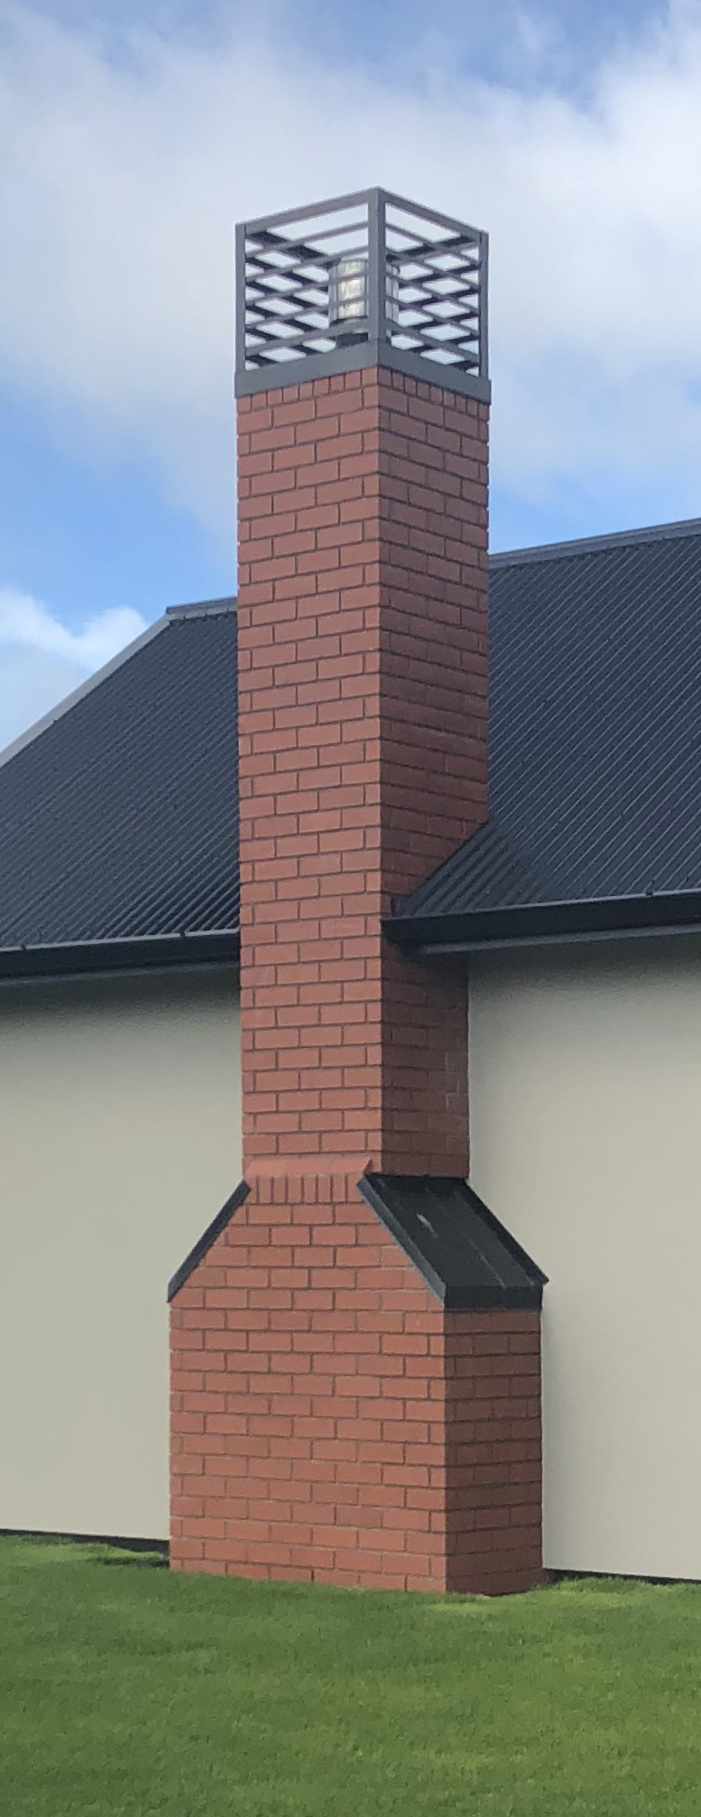 Style 2.  Is the gather type where the base is wider than the chimney stack. These are seen very often on heritage style homes.